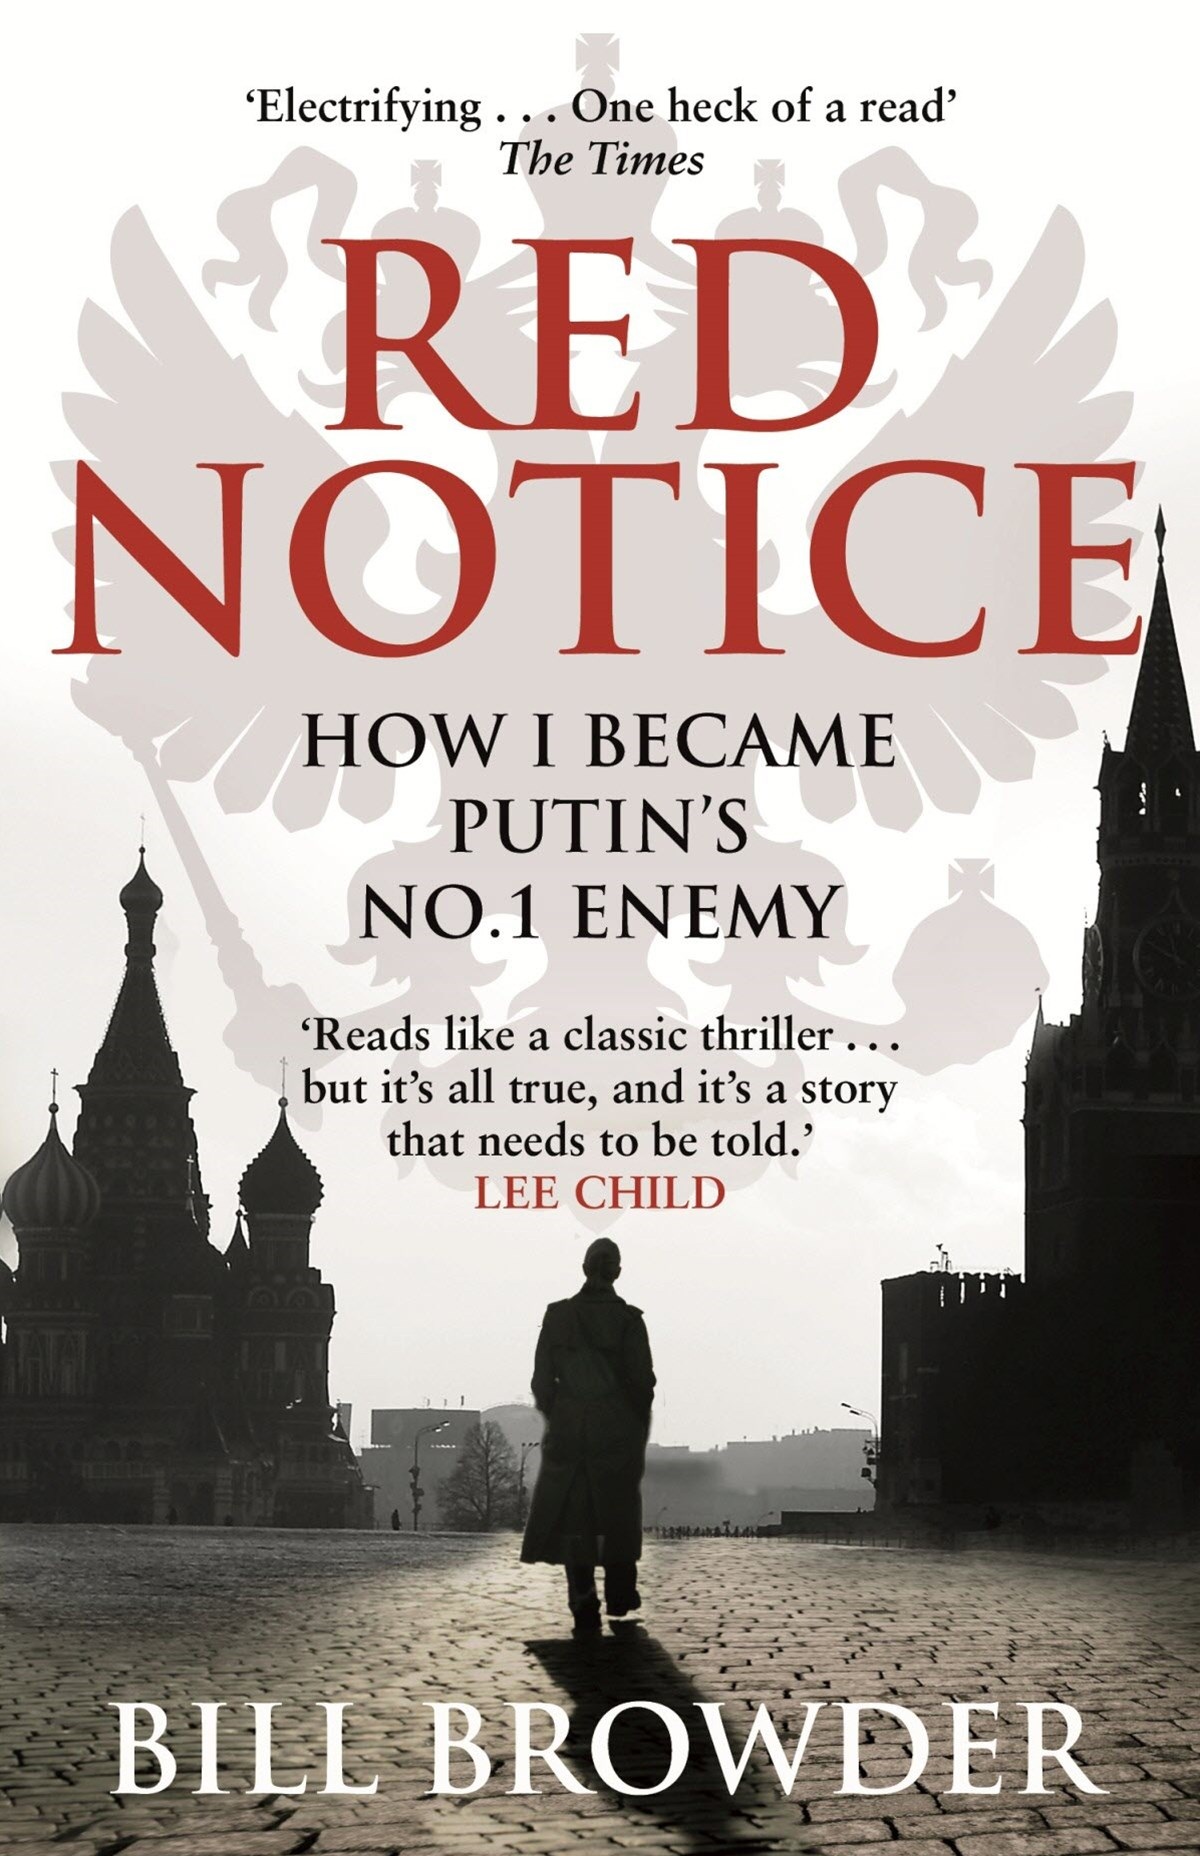 Red Notice: How I Became Putin's No. 1 Enemy